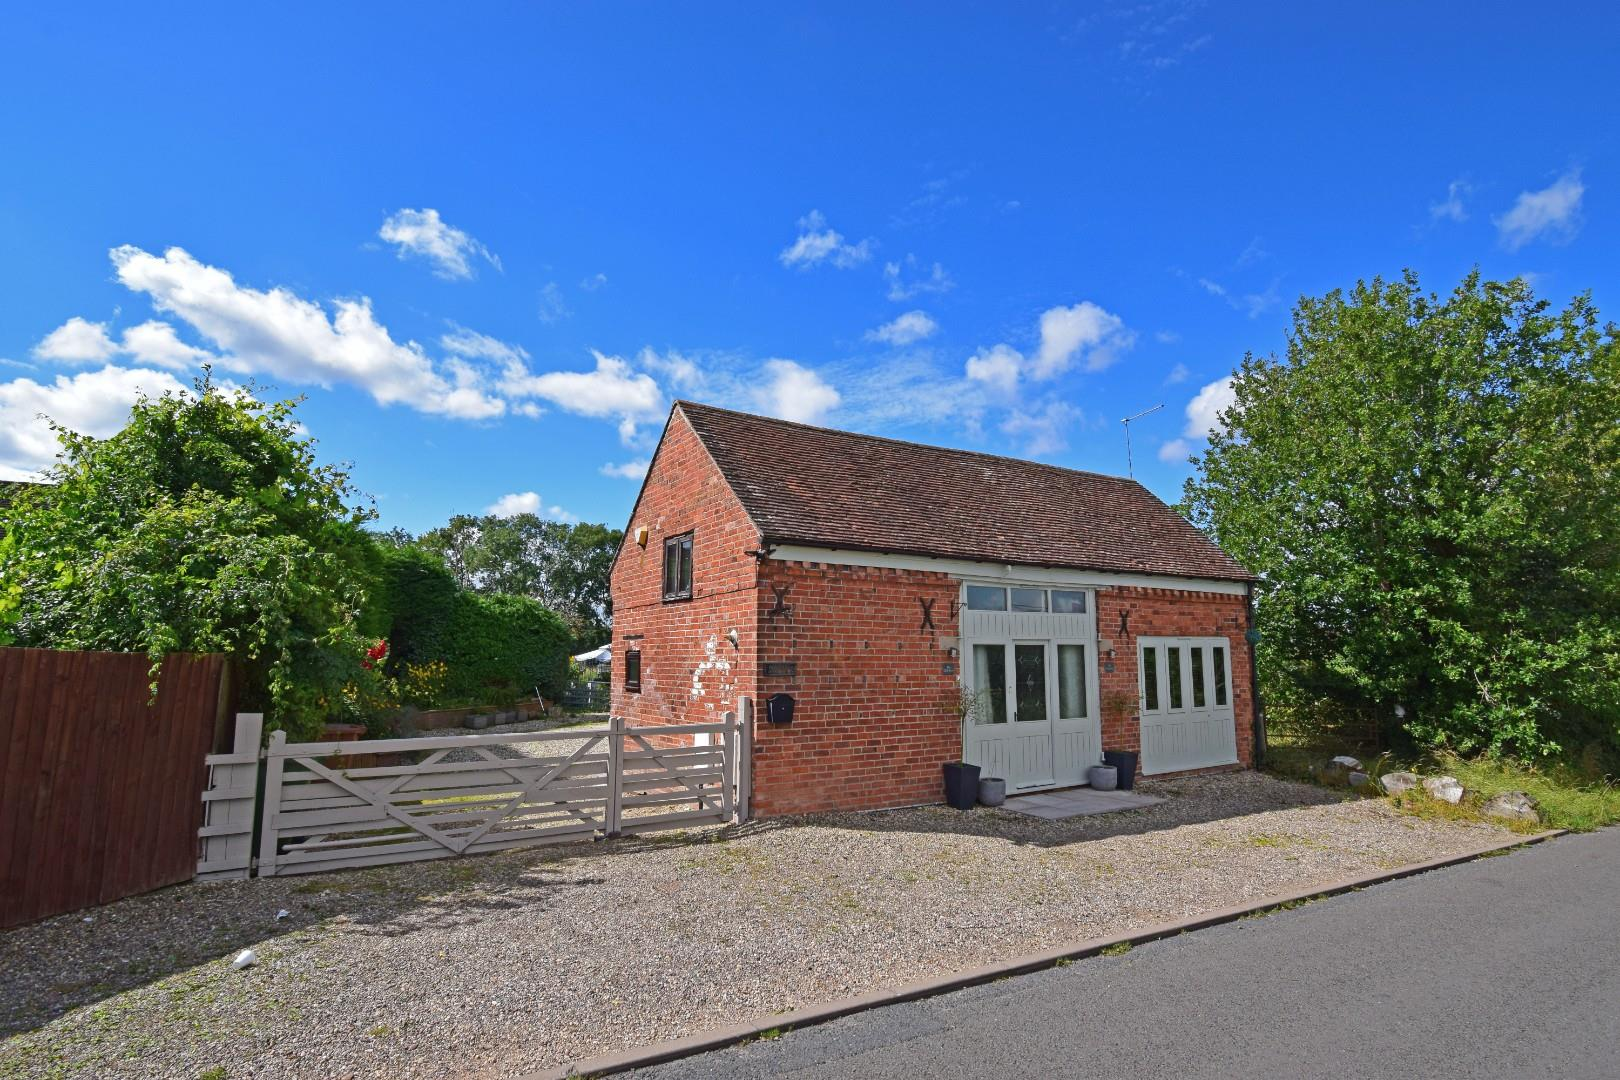 The Old Barn, Chequers Lane, Wychbold, Worcestershire, WR9 7PH